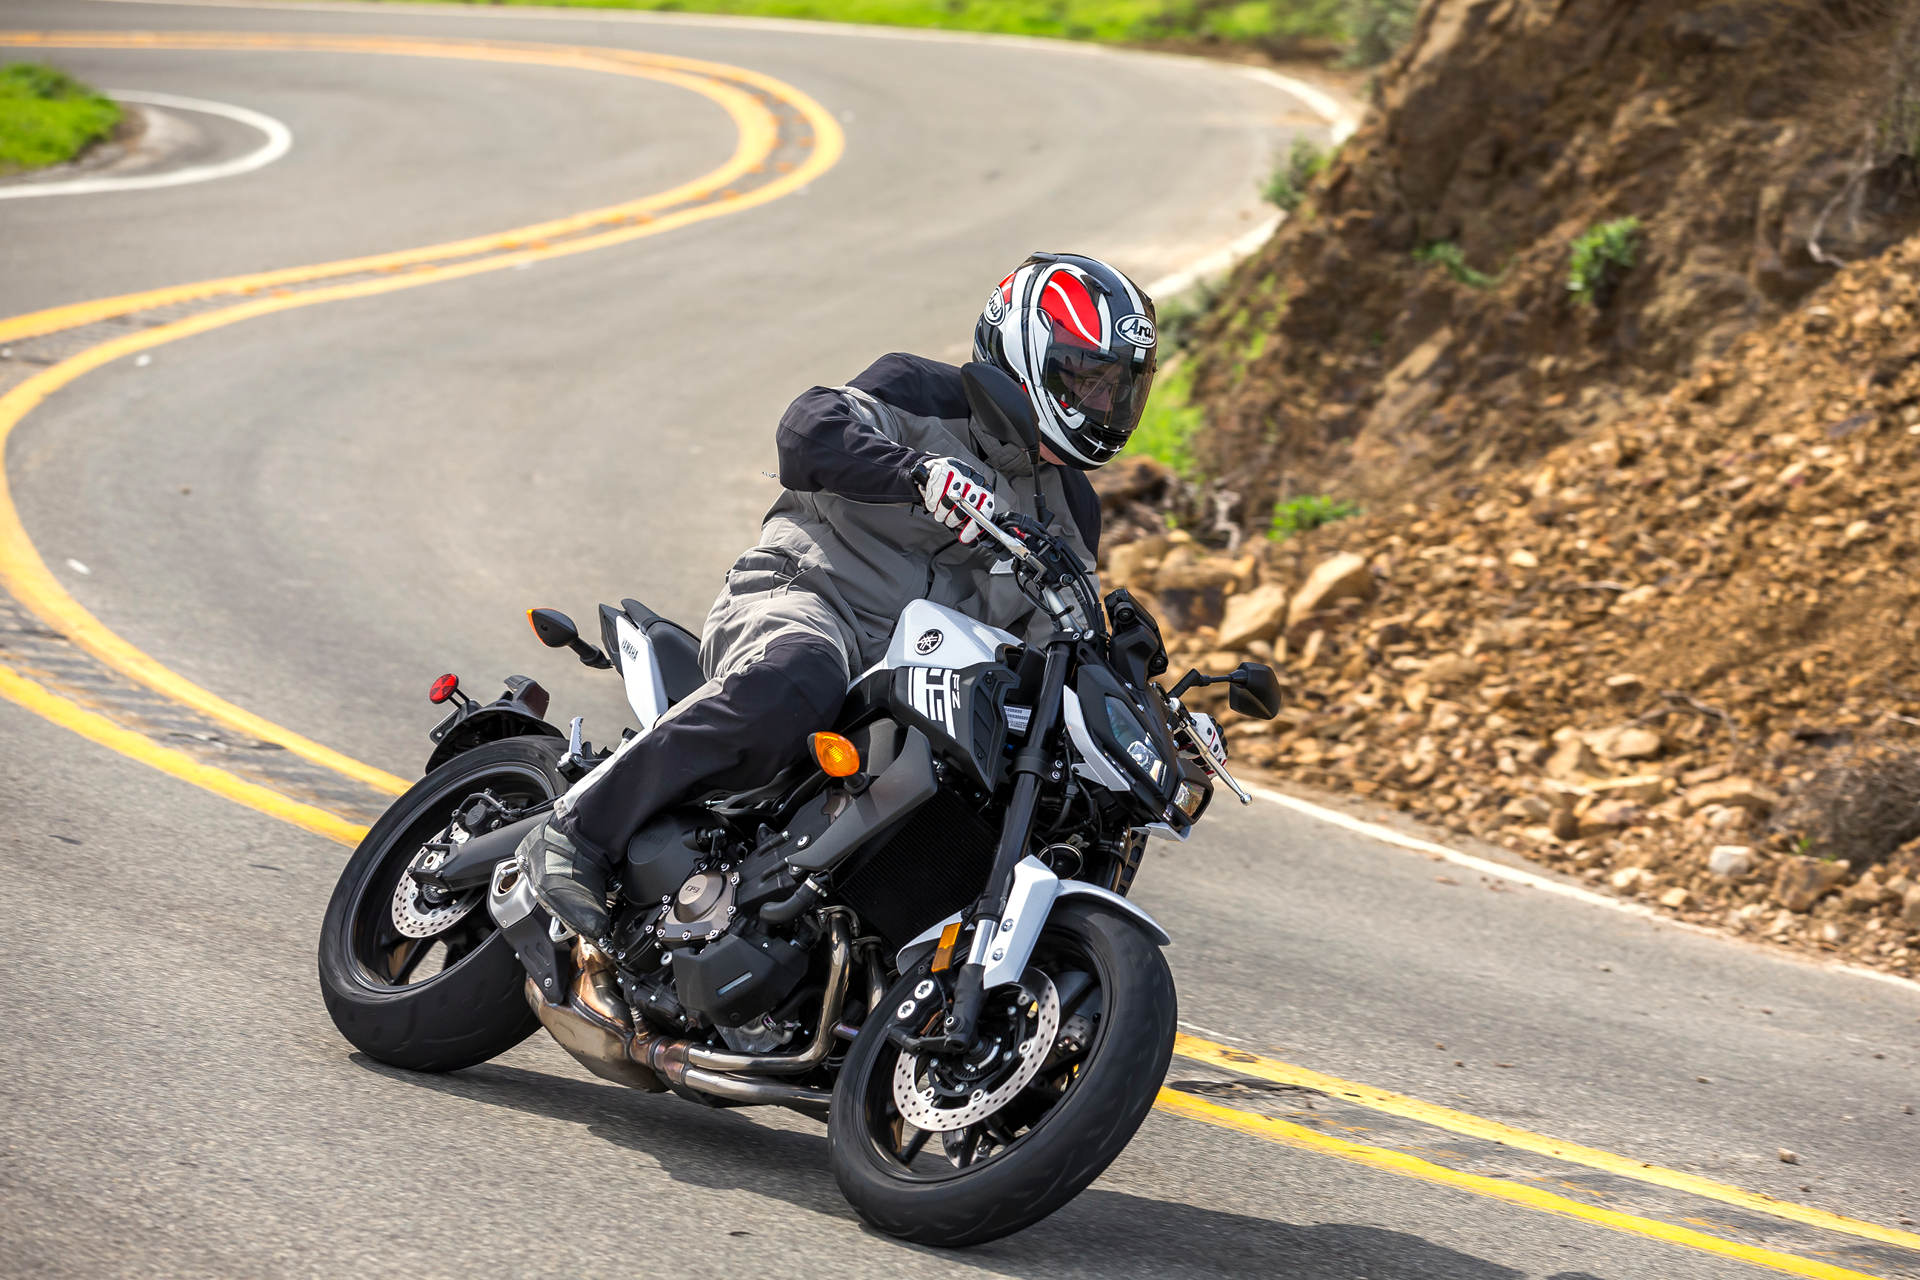 2017 Yamaha Fz 09 Md First Ride Motorcycle Mt We Always Felt That Could Not Pass Final Judgment On The Quality Of Chassis Offered By Original 2014 Primarily Because Poor